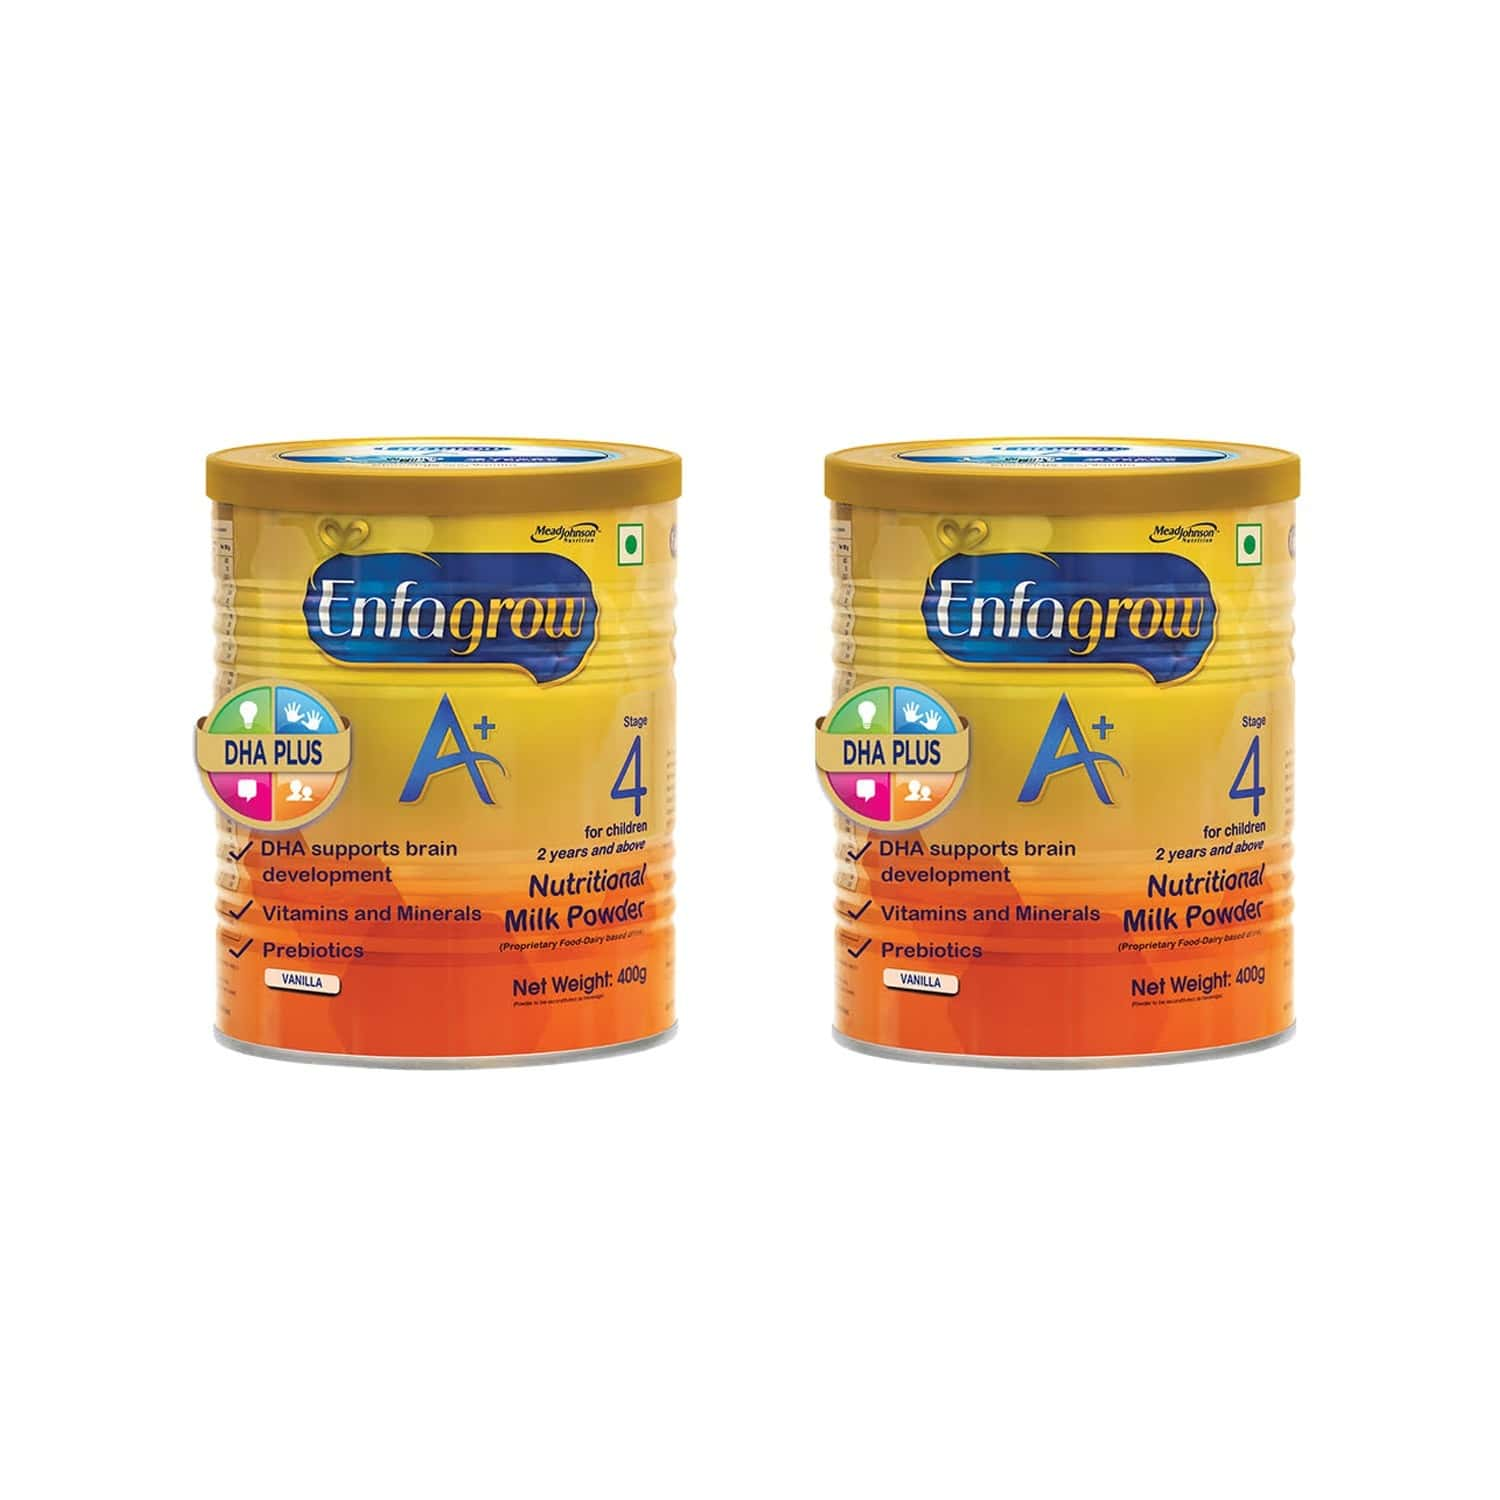 Enfagrow A+ Vanilla Child Nutrition Drink Stage 4 (2 Years And Above) Refill Of 400 G Buy 1 Get 1 Free